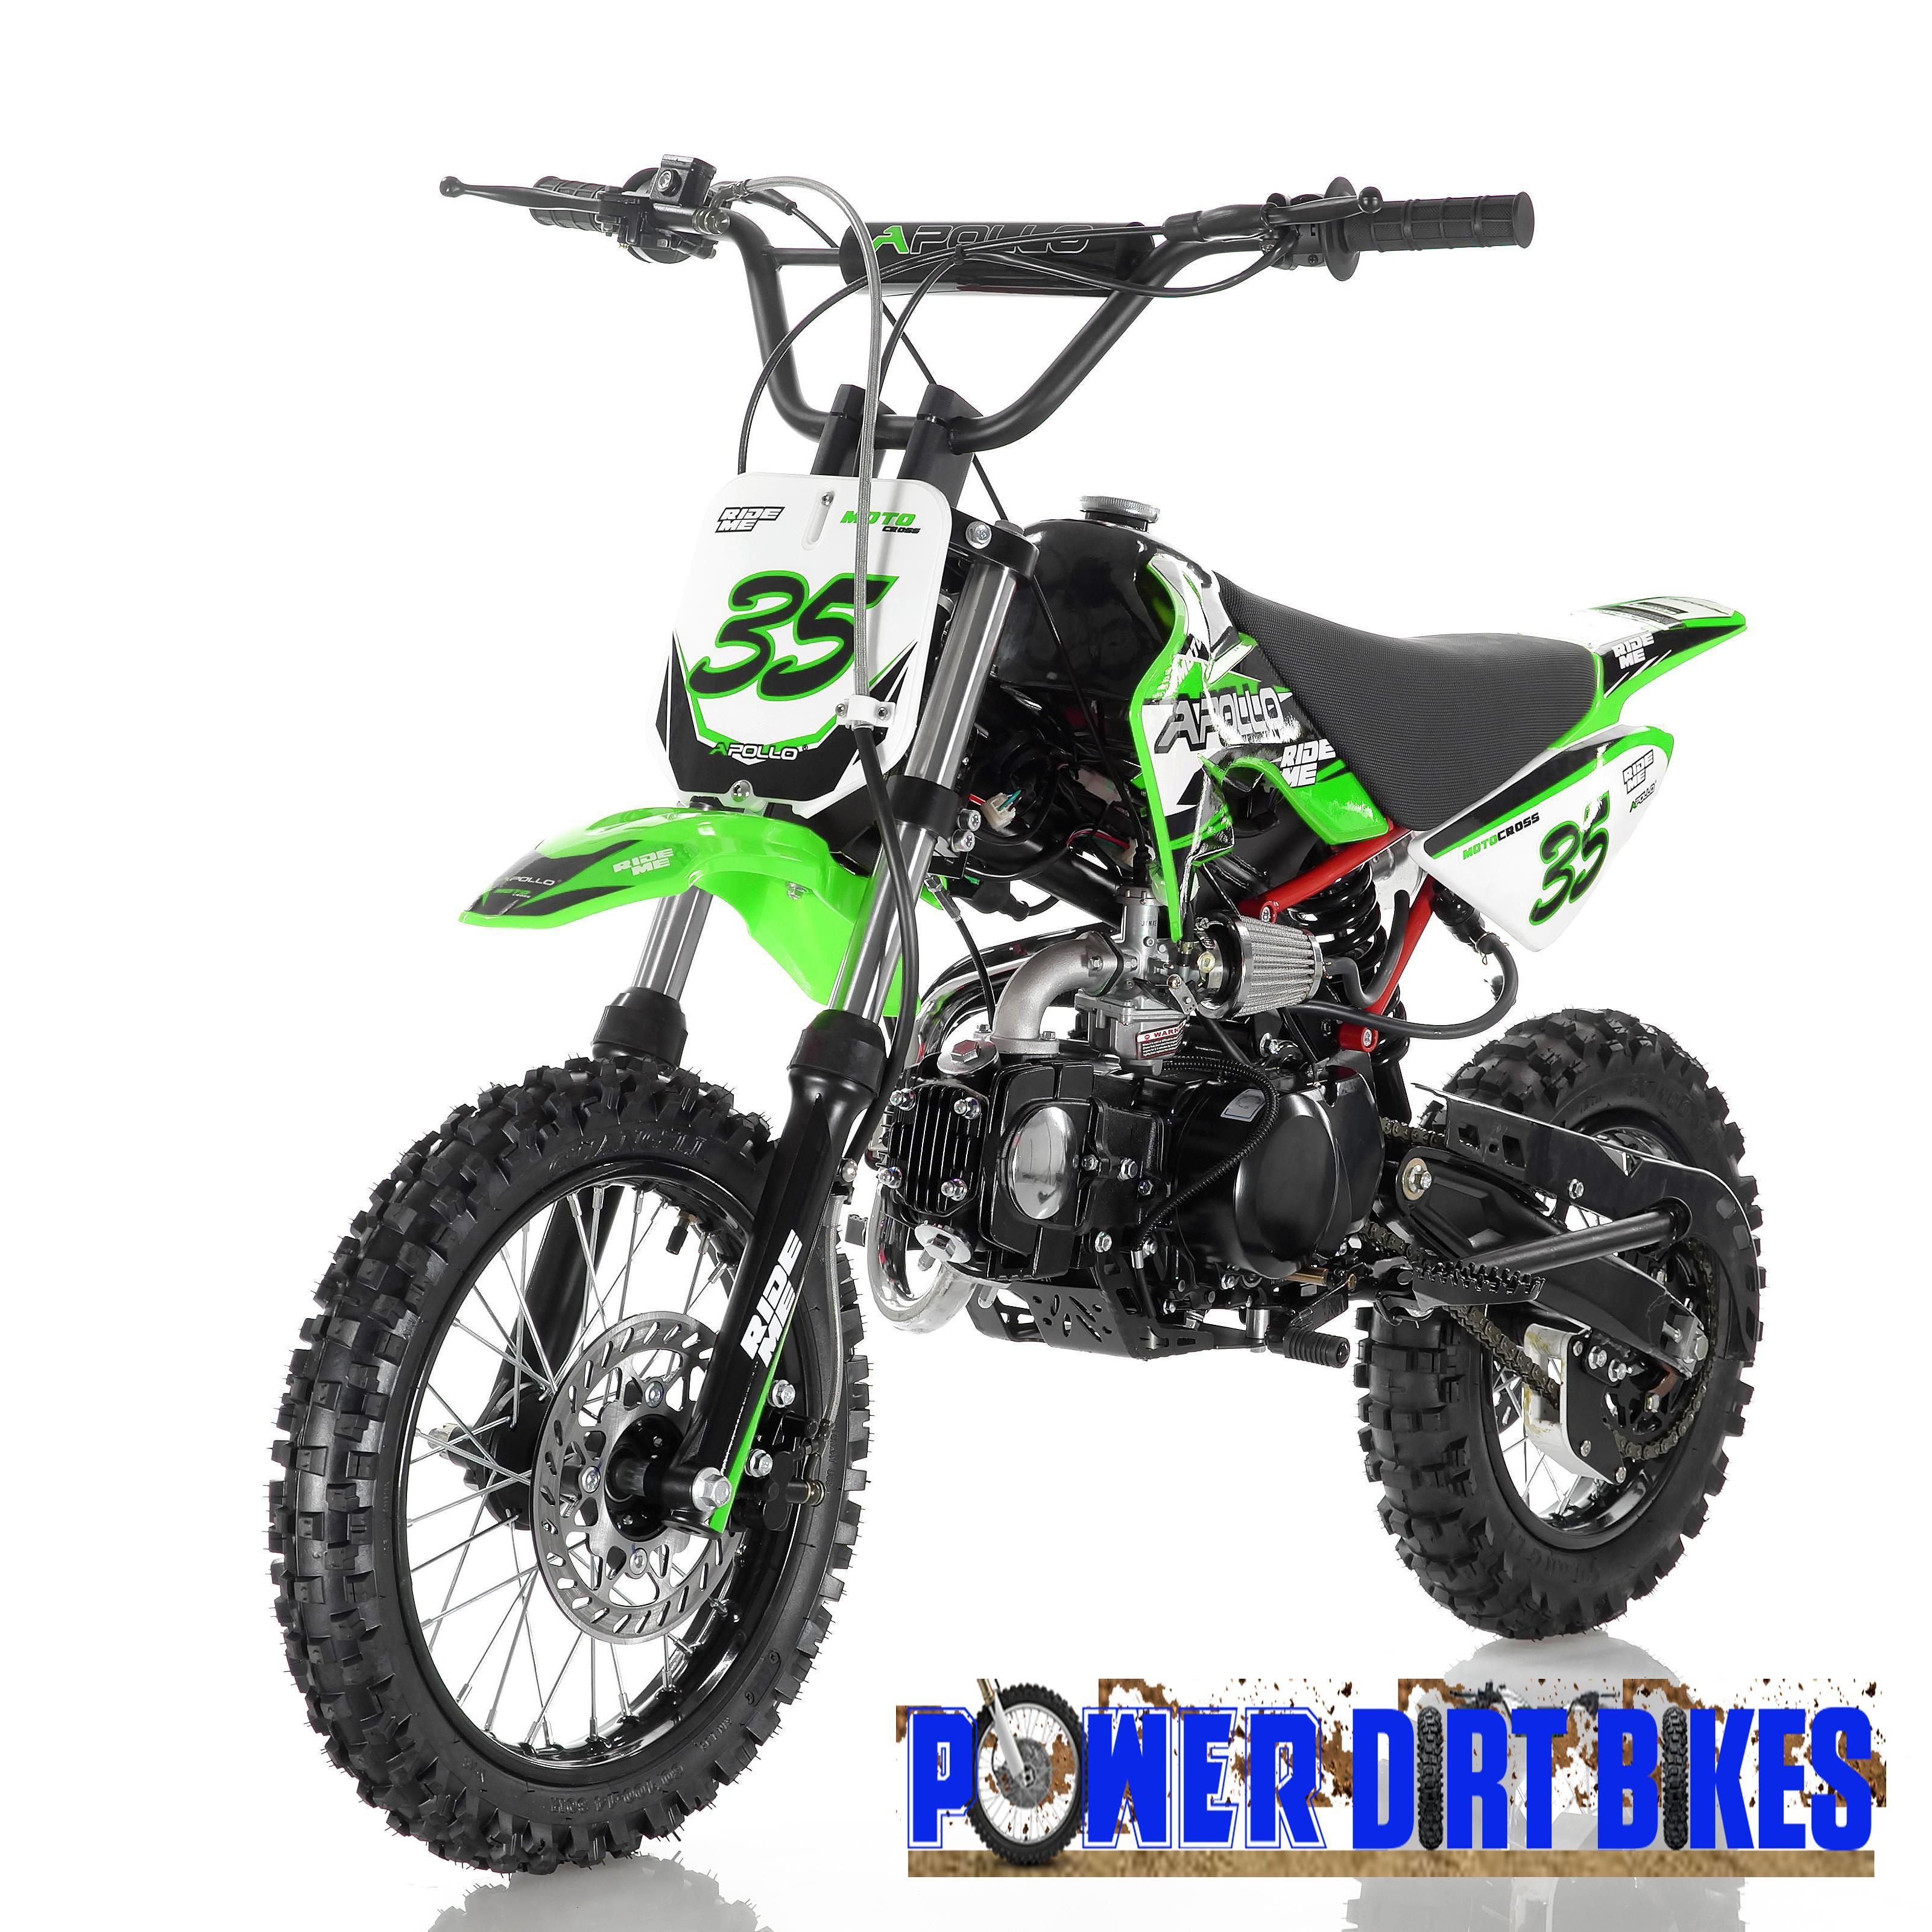 Cheap Dirt Bikes Power Dirt Bikes Sale Free Shipping Dirt